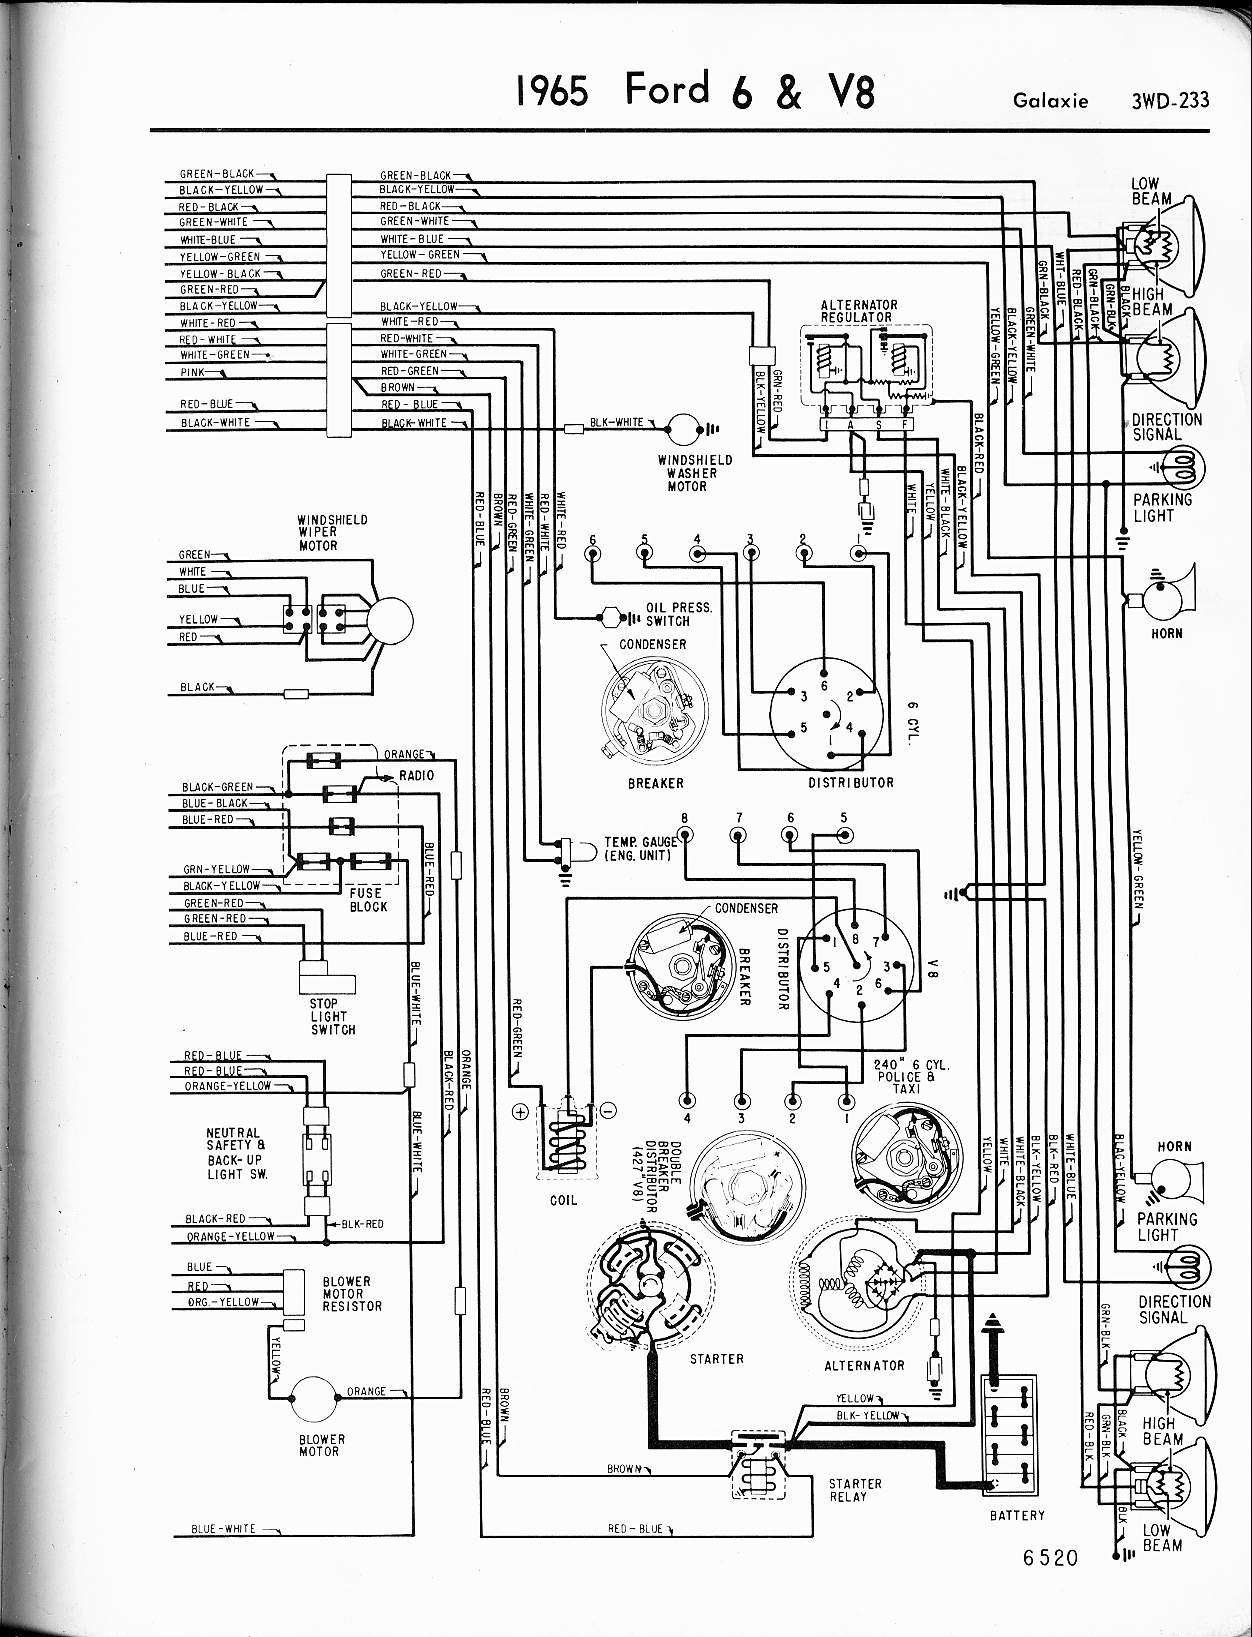 57 65 ford wiring diagrams 1940 dodge ignition wiring 1995 dodge ignition wiring diagram #6